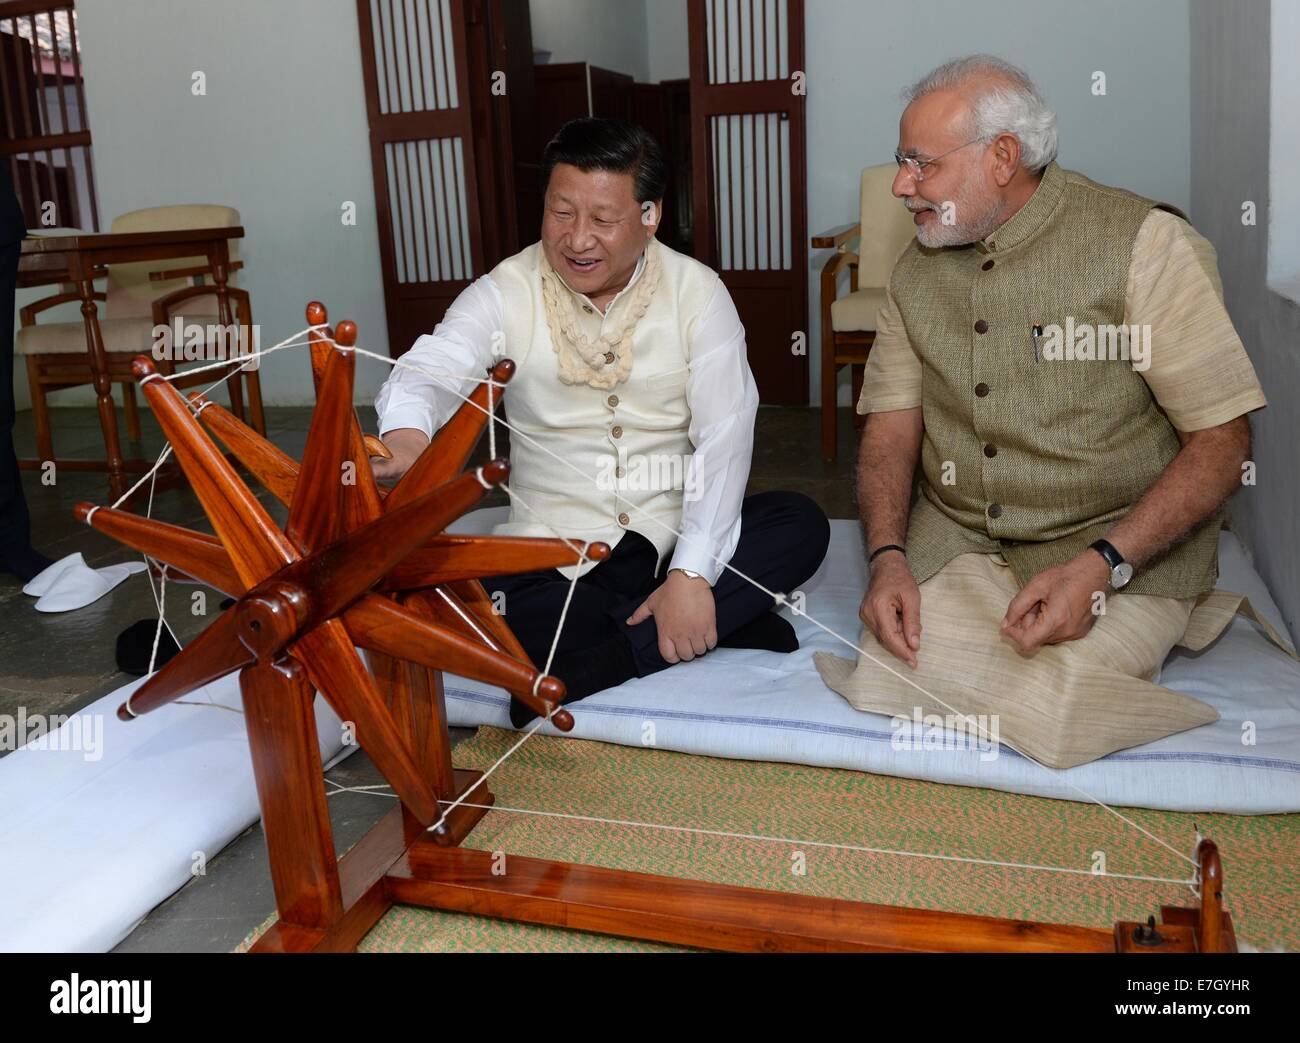 New Dehli, India. 17th Sep, 2014. Chinese President Xi Jinping (L) rotates a spinning wheel that was once used by - Stock Image